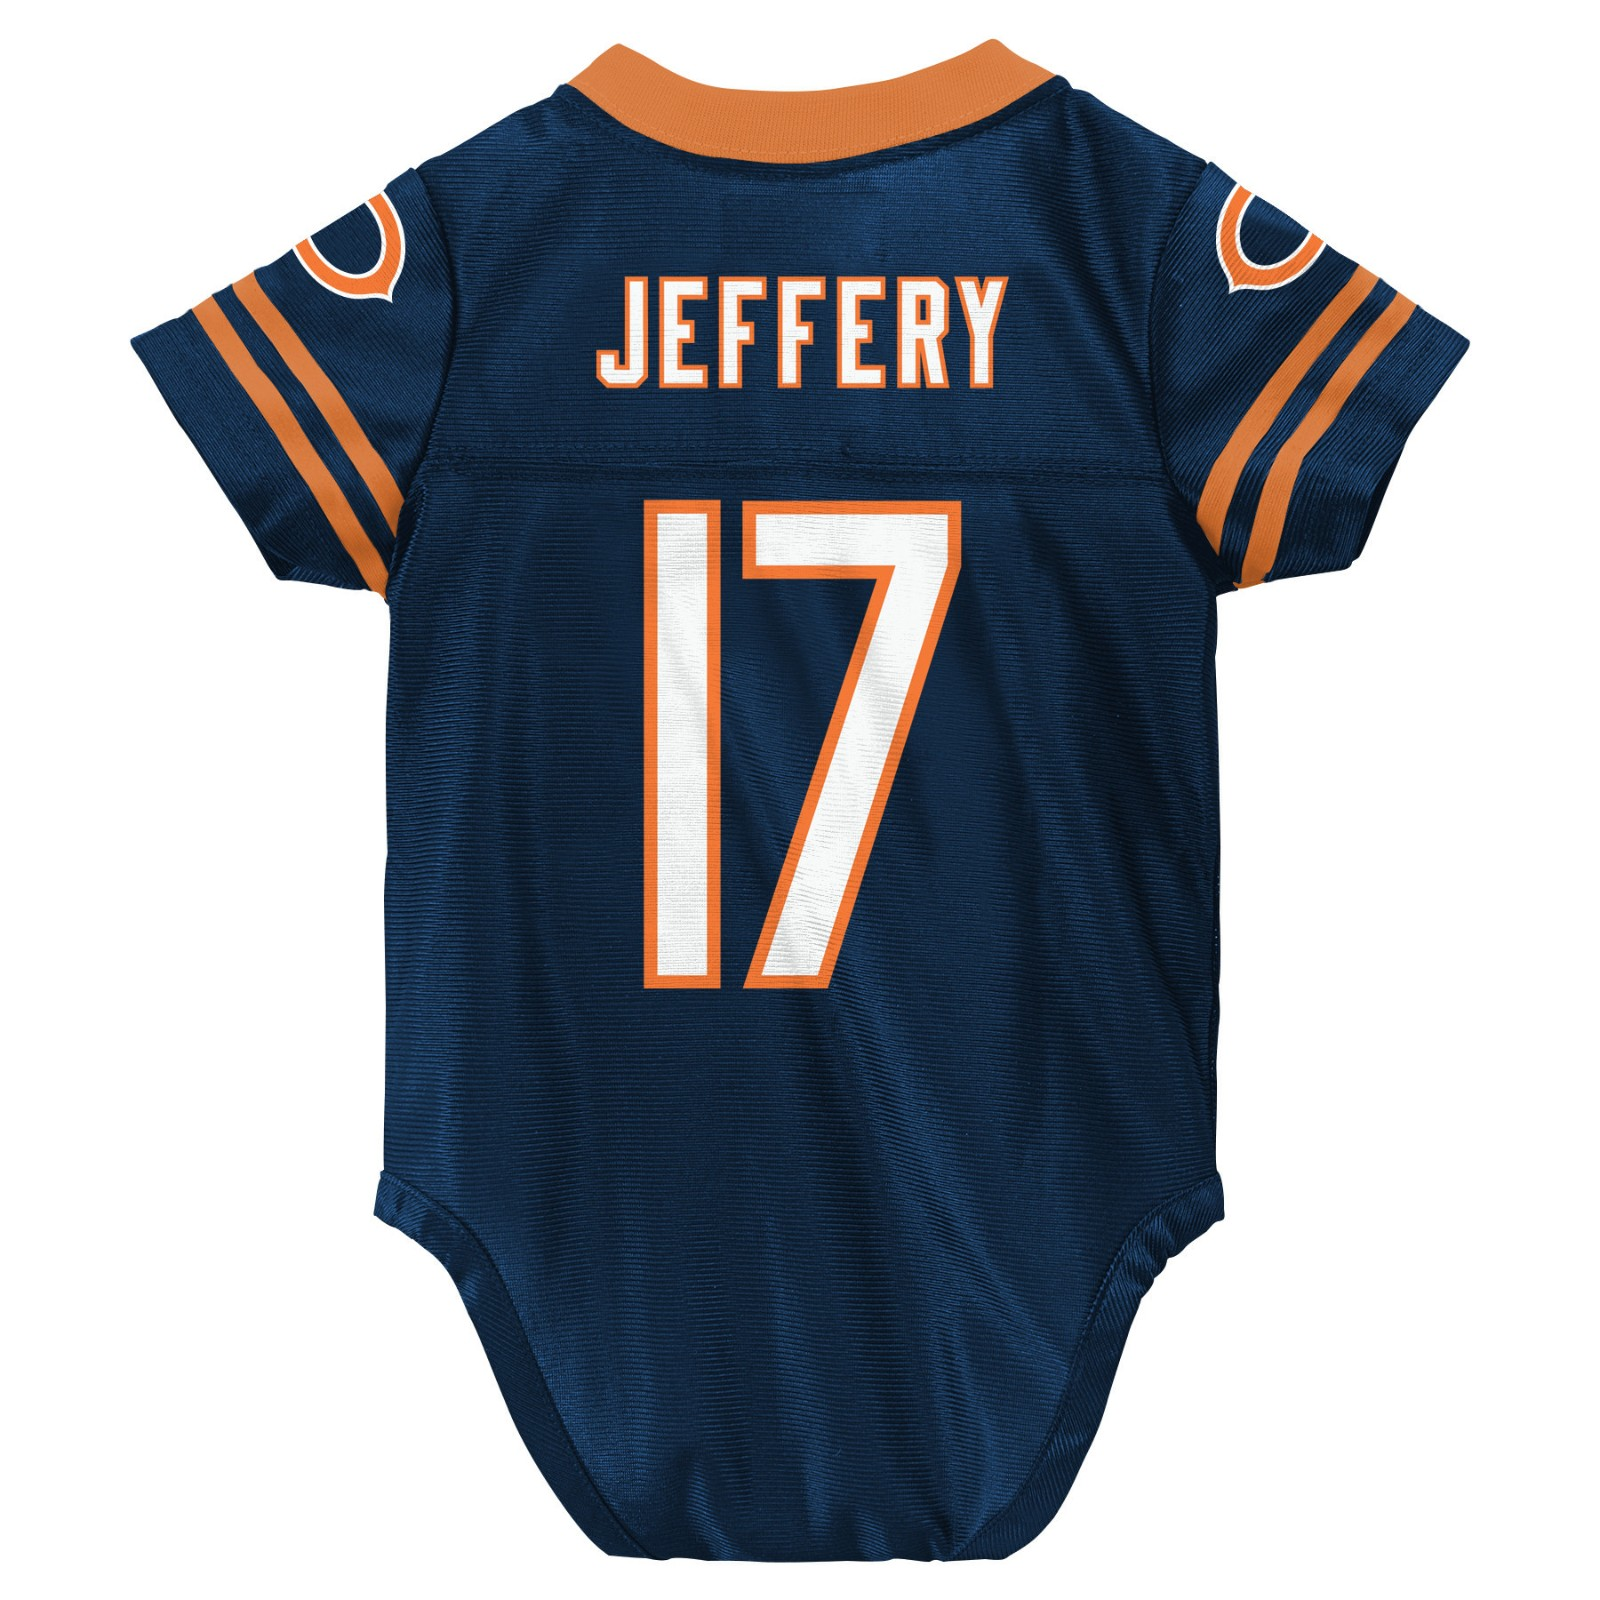 new product 5f30a 24128 Details about Alshon Jeffery NFL Chicago Bears Home Infant Newborn Creeper  Jersey (3-9M)